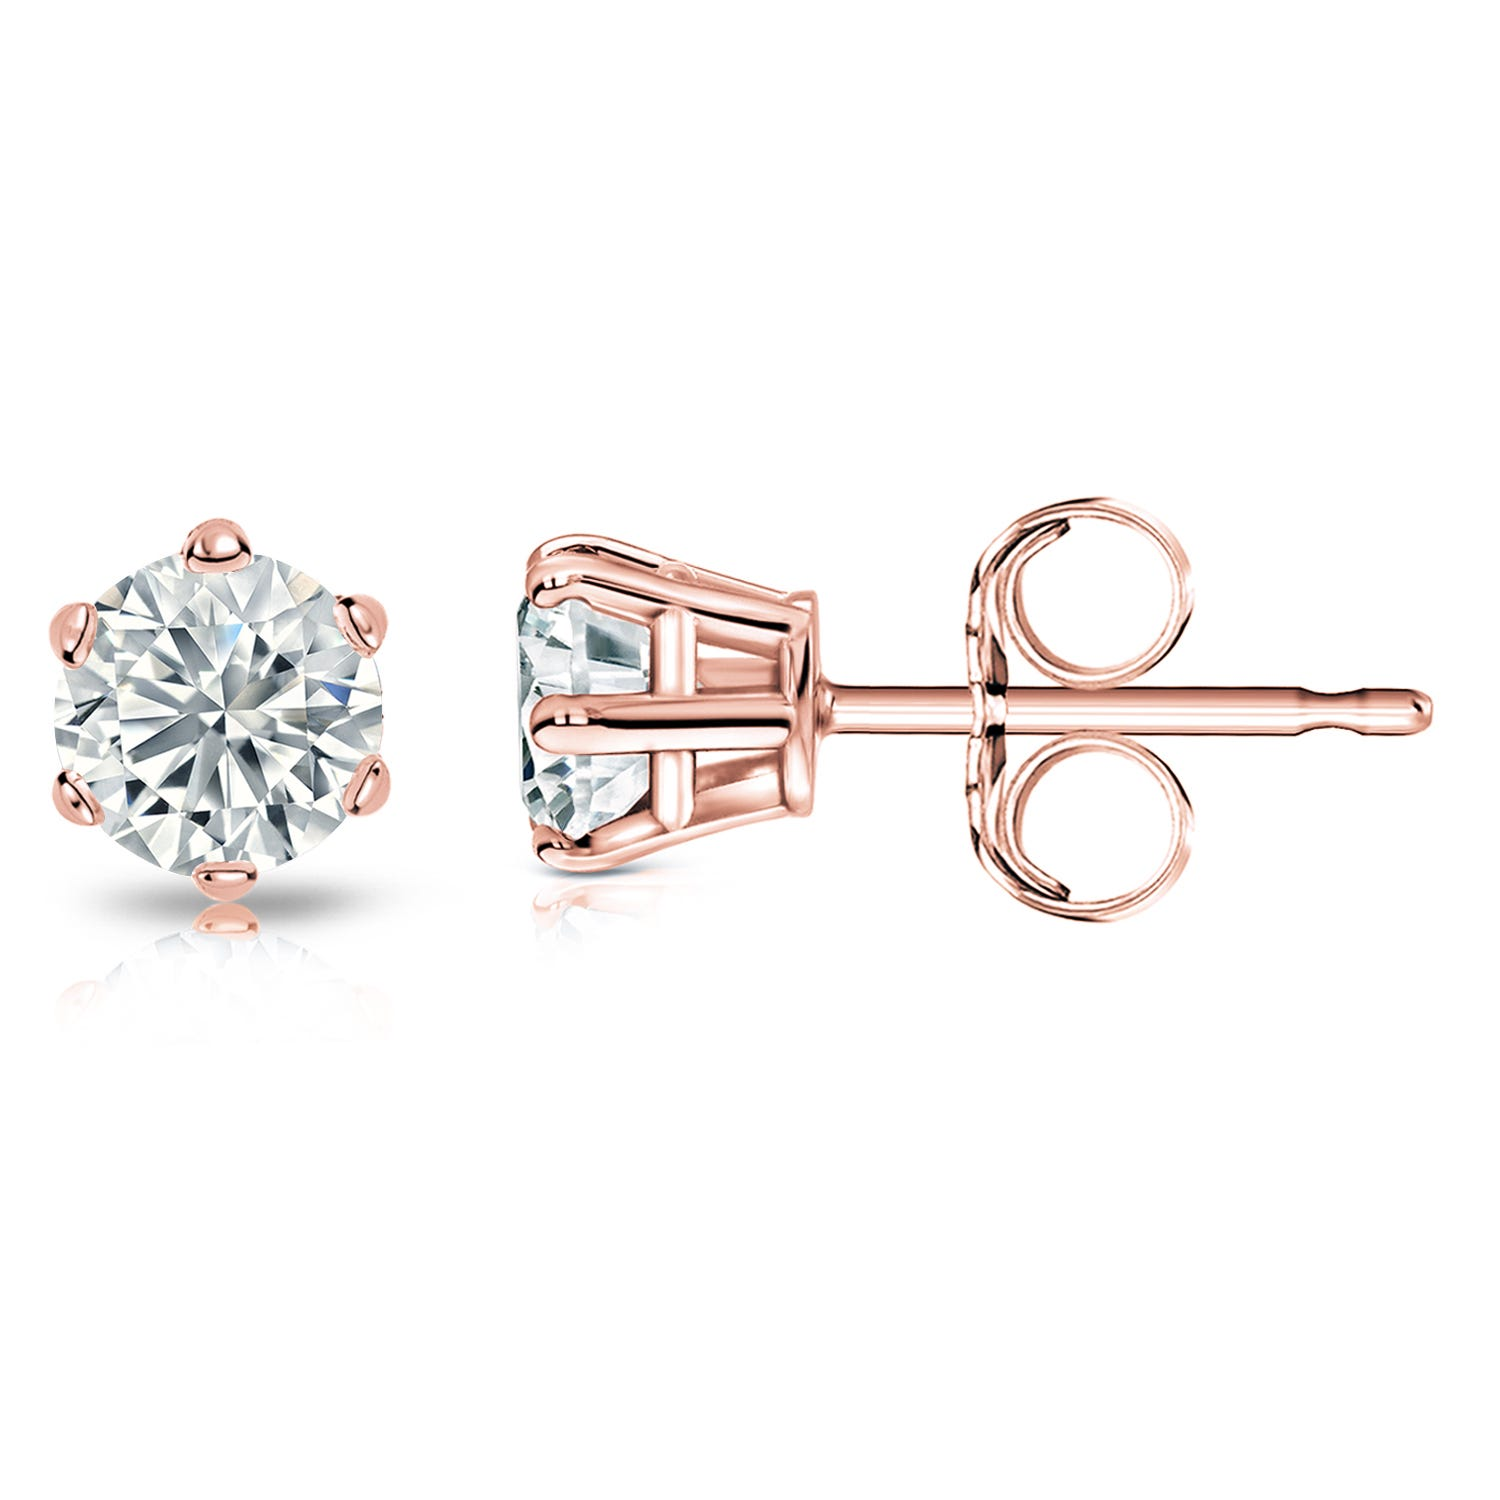 Round Diamond 1ctw. (IJ-SI2) Solitaire Stud 6-Prong Earrings in 14K Rose Gold